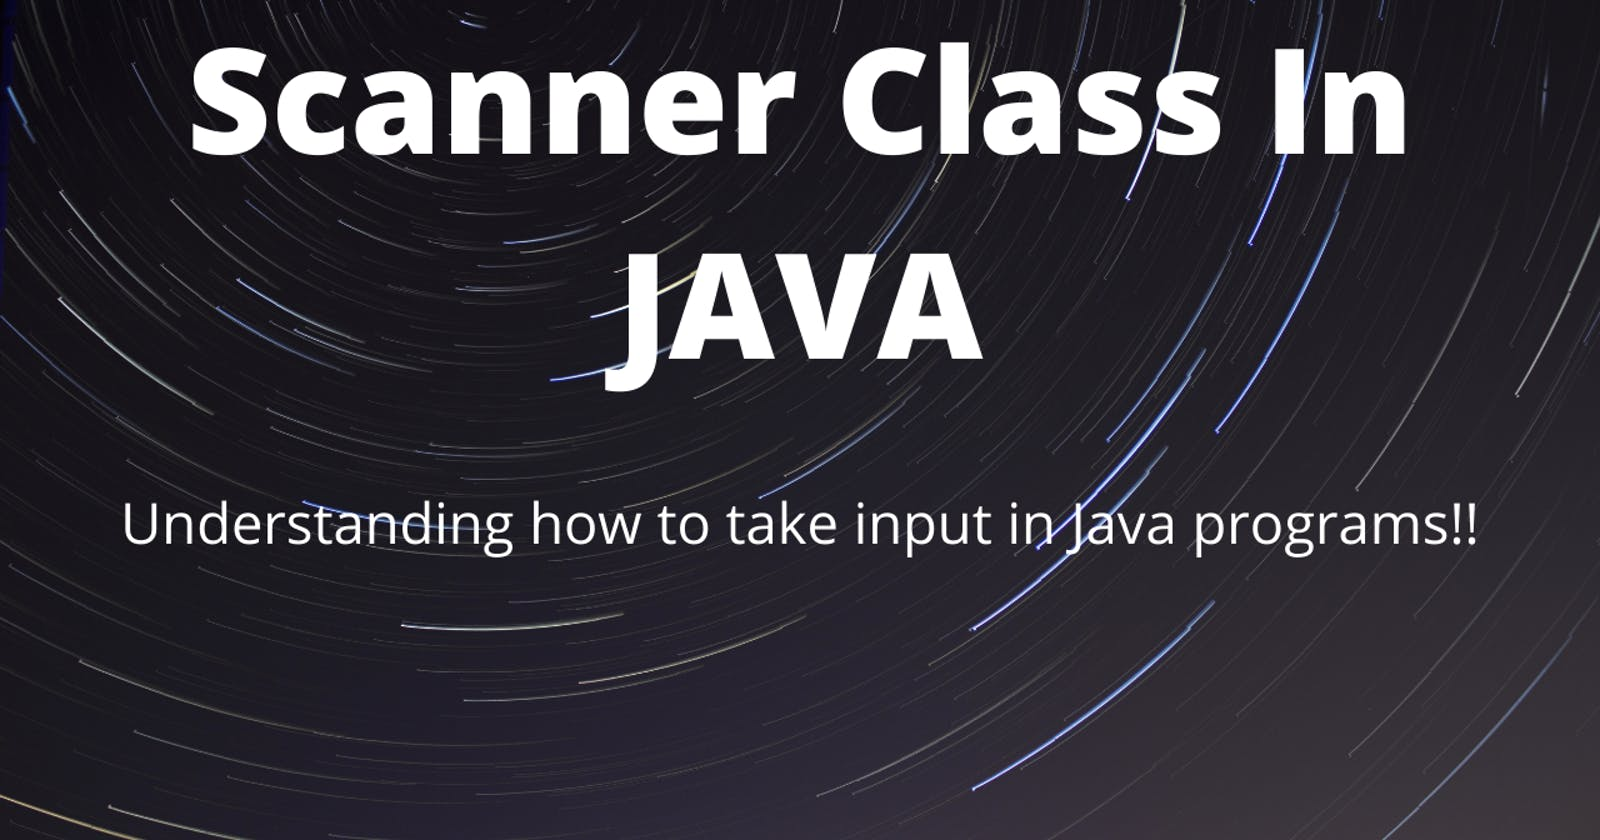 Taking Input In Java - The Scanner Class!!